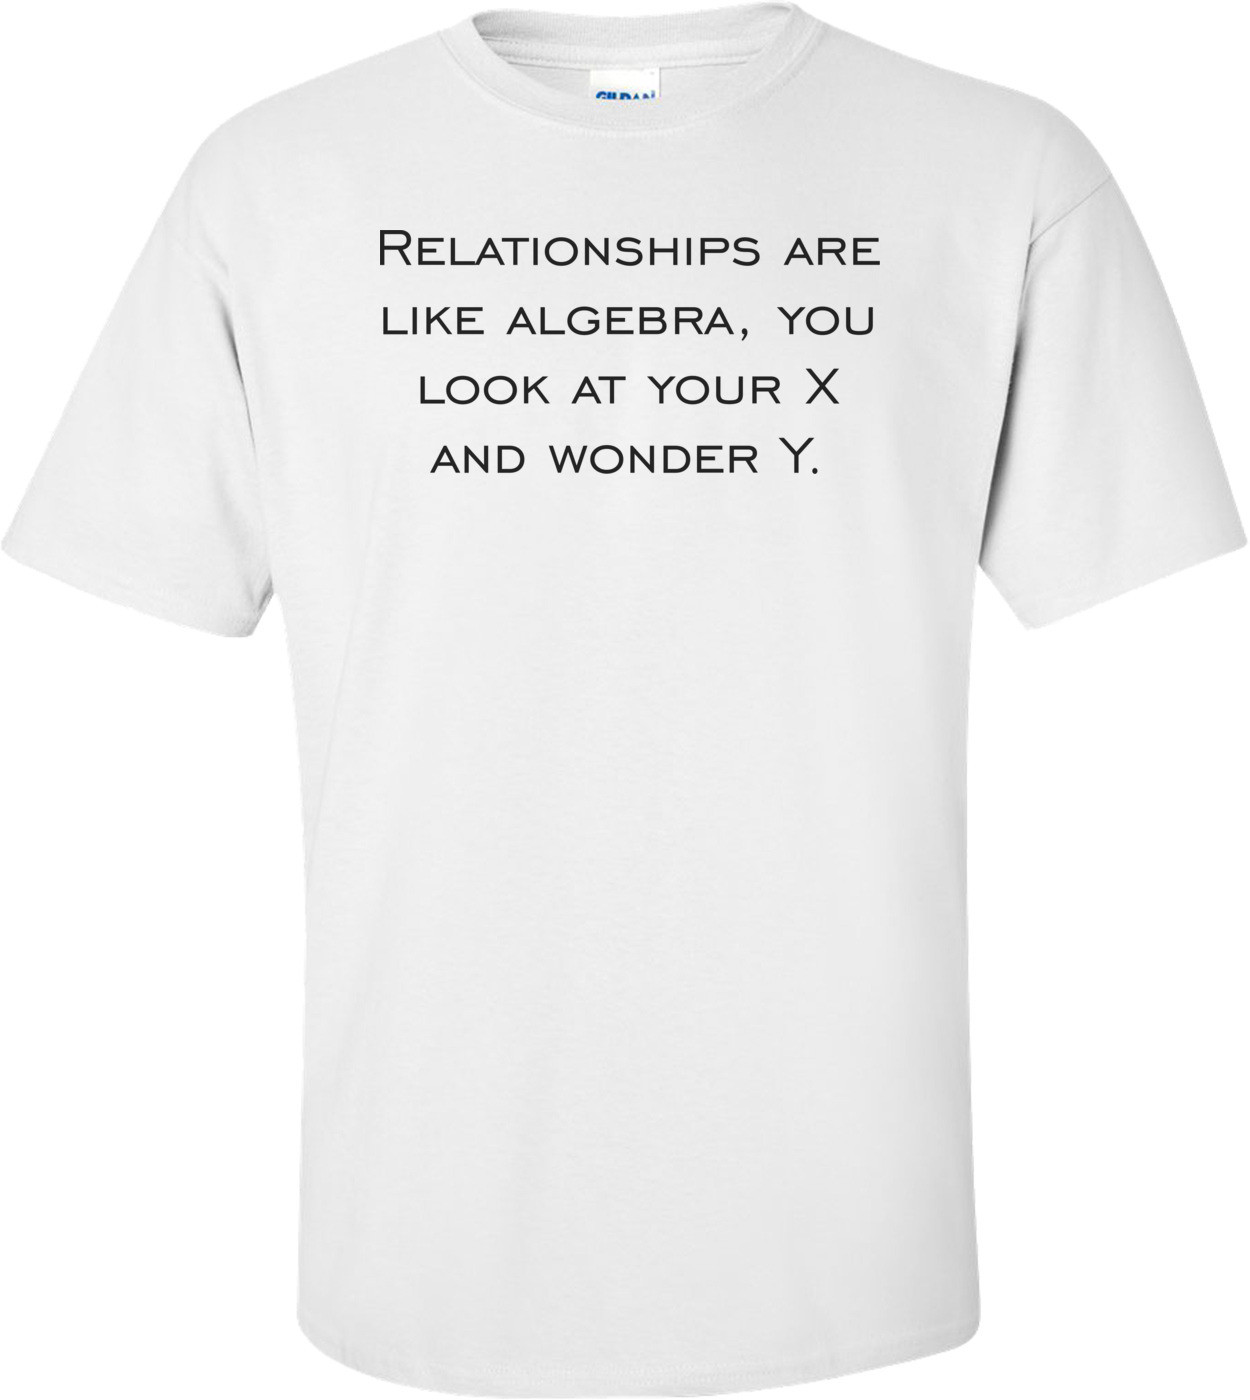 Relationships are like algebra, you look at your X and wonder Y. Shirt